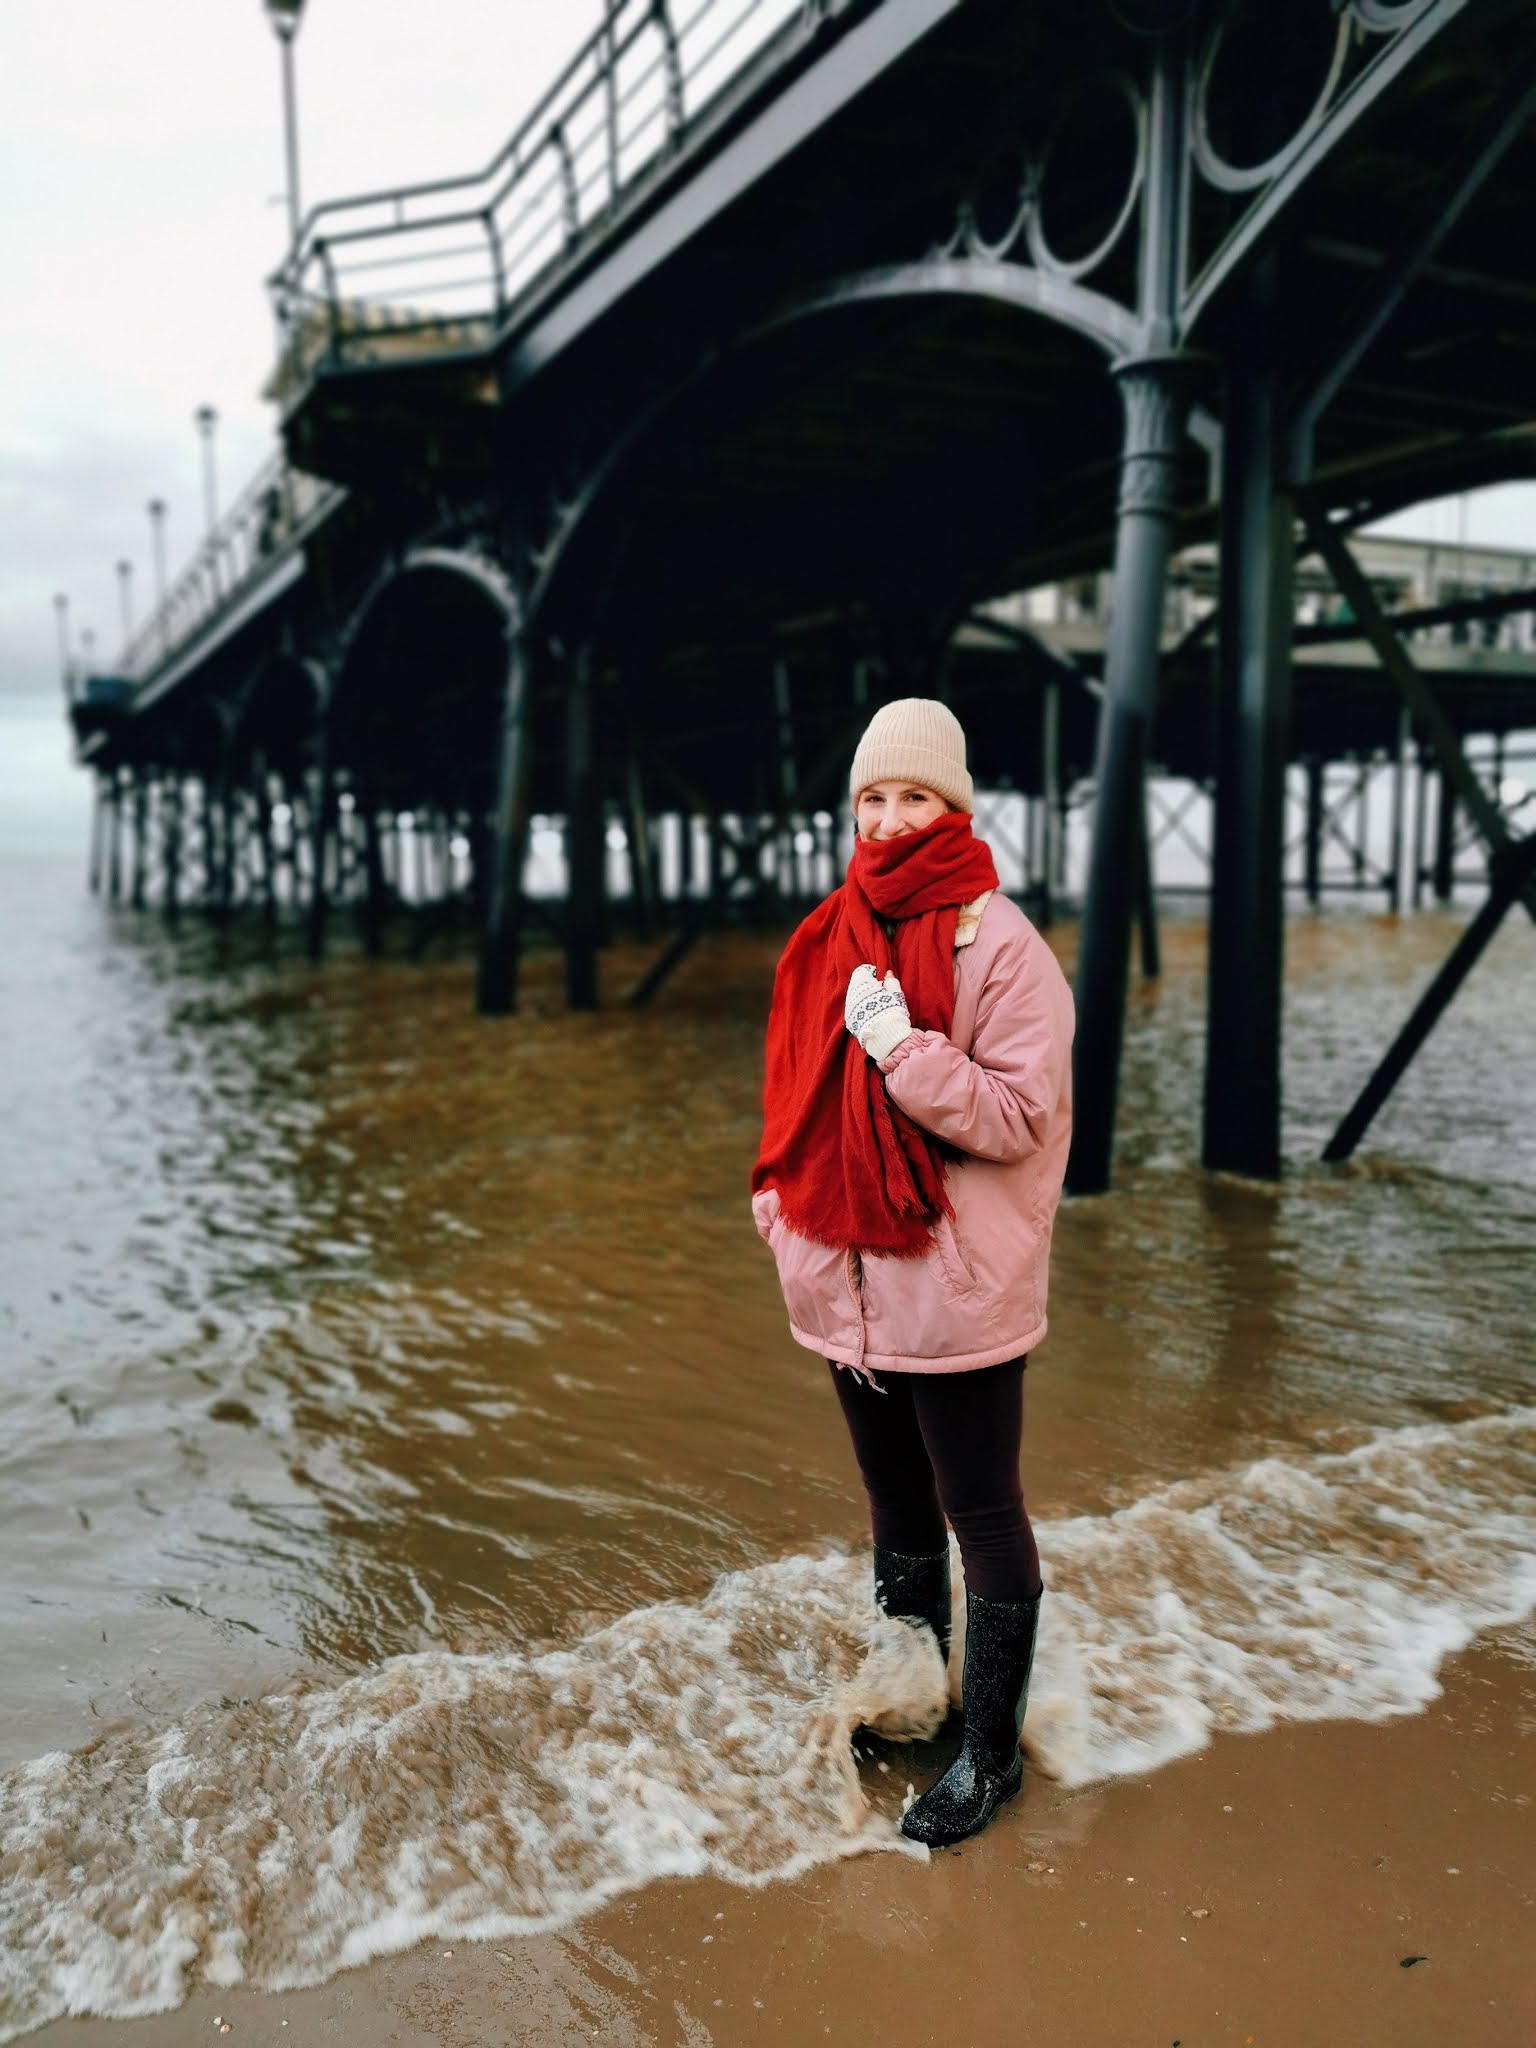 Amy is stood on the beach underneath a huge pier with water lapping at her wellies. She's wearing a pink coat and a red scarf.